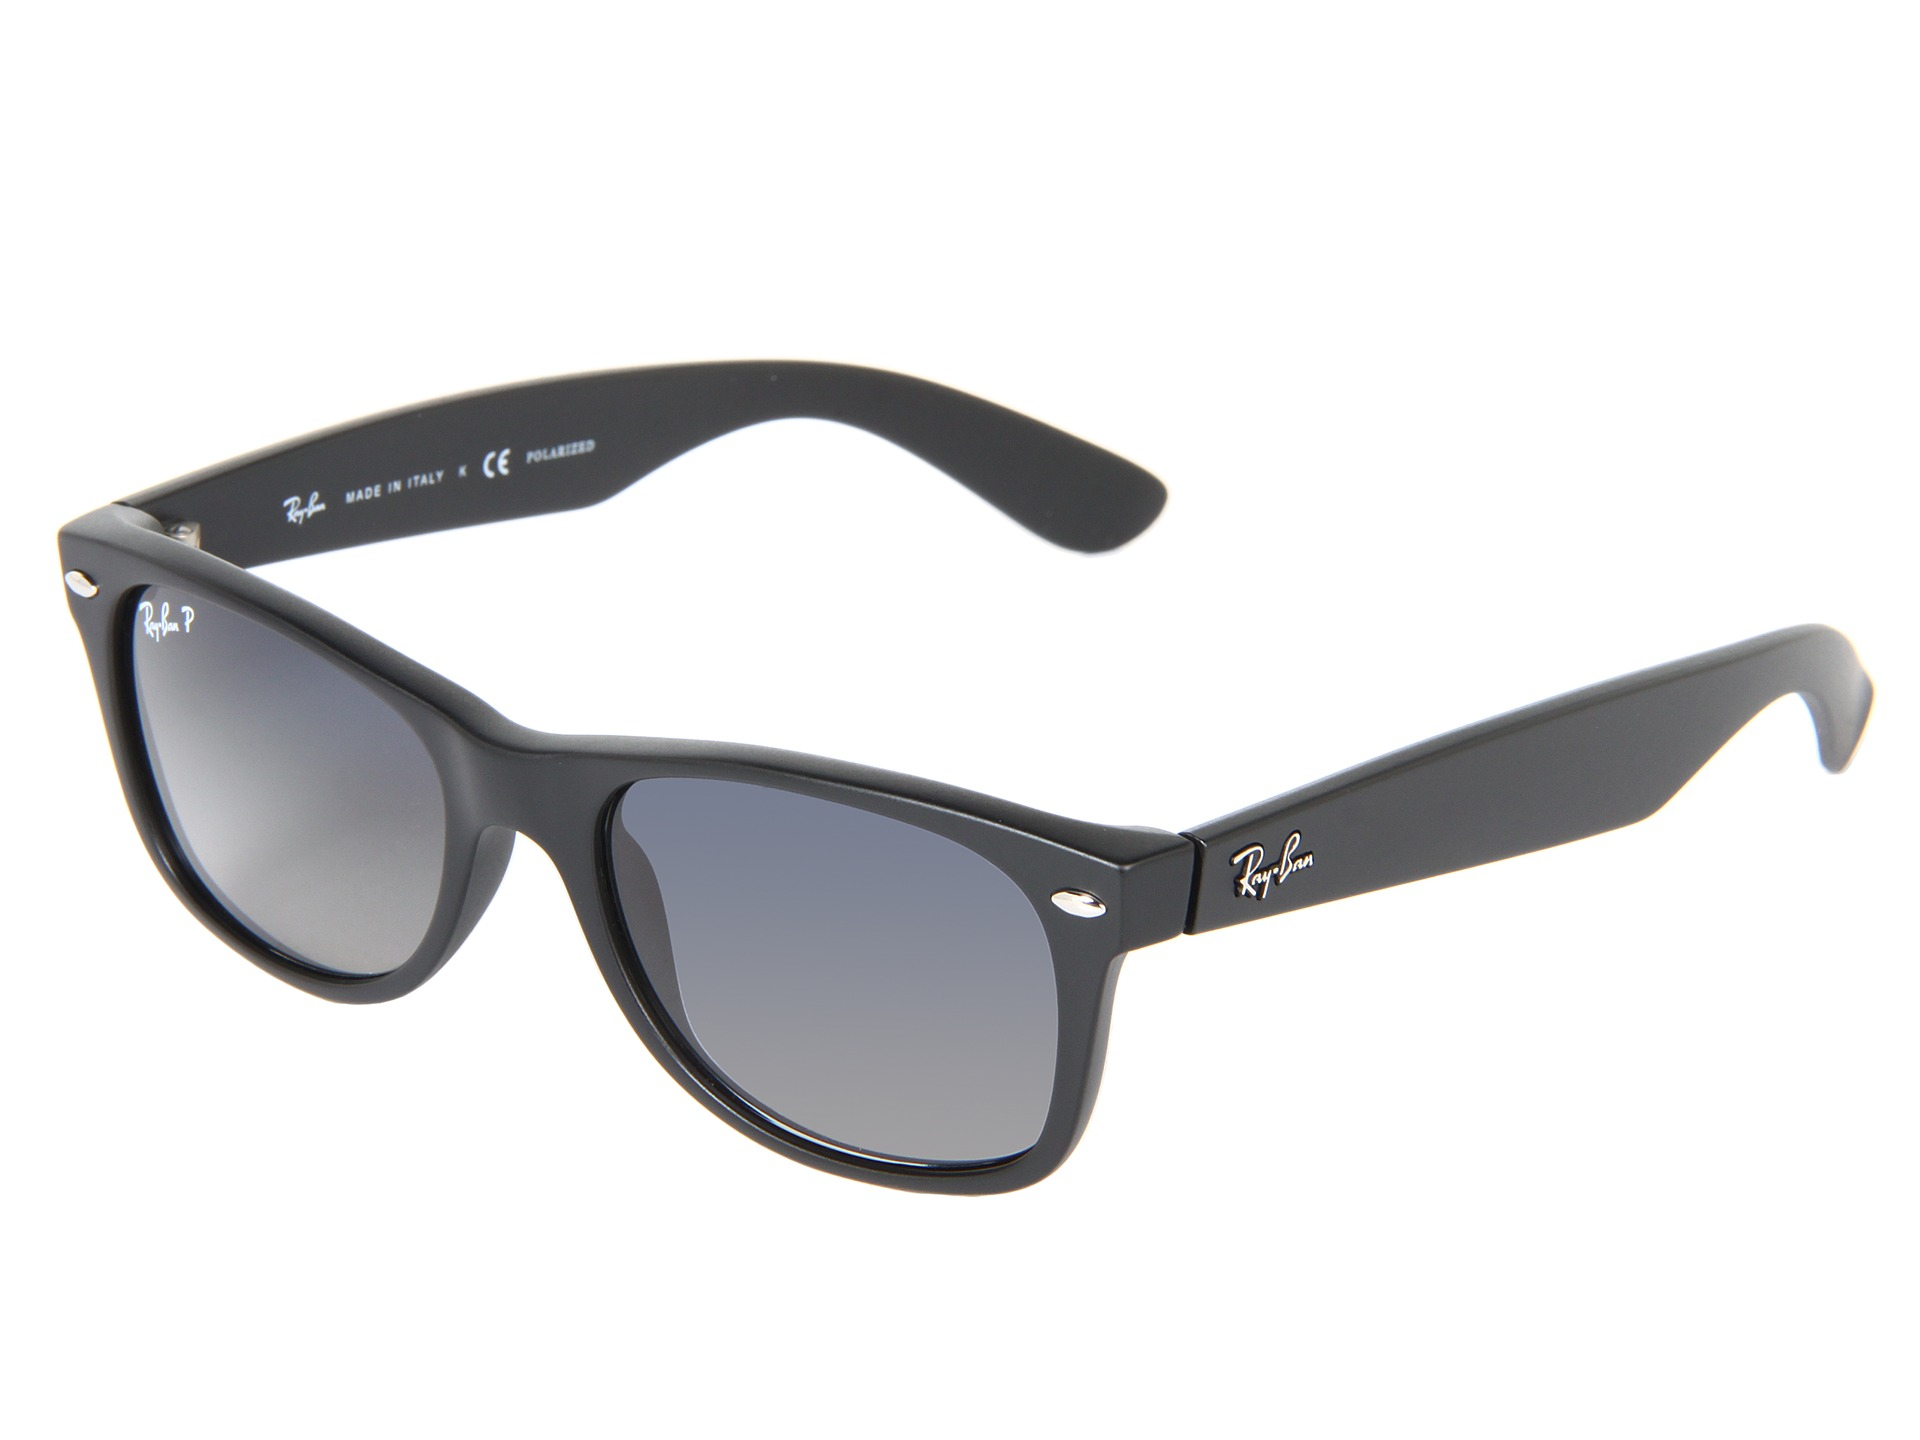 e40cdd02dc Women S Ray Bans 52mm Uv Protection « Heritage Malta